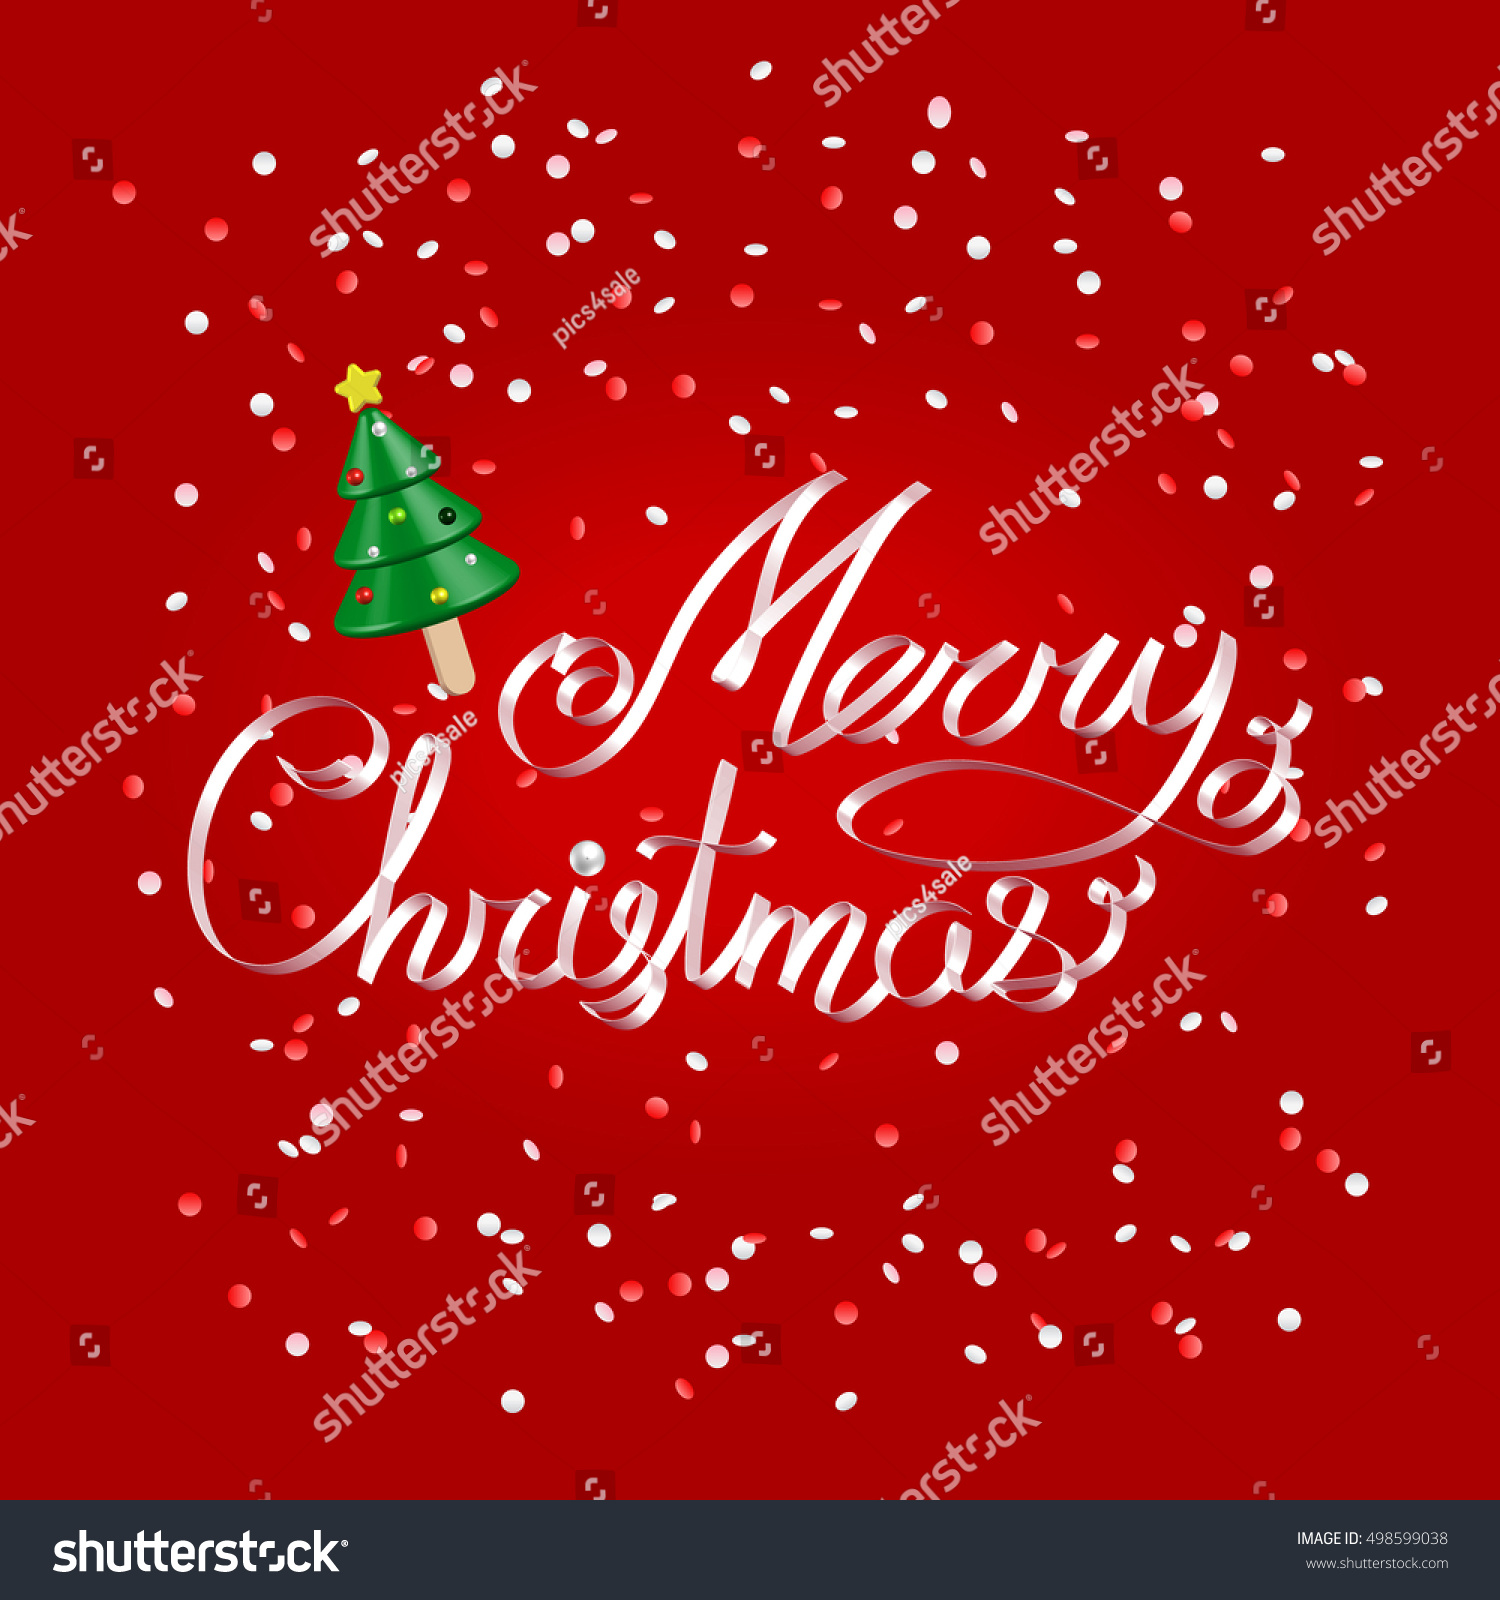 Merry christmas greetings white ribbon lettering stock vector merry christmas greetings white ribbon lettering over festive red background with christmas tree icecream and confetti kristyandbryce Image collections